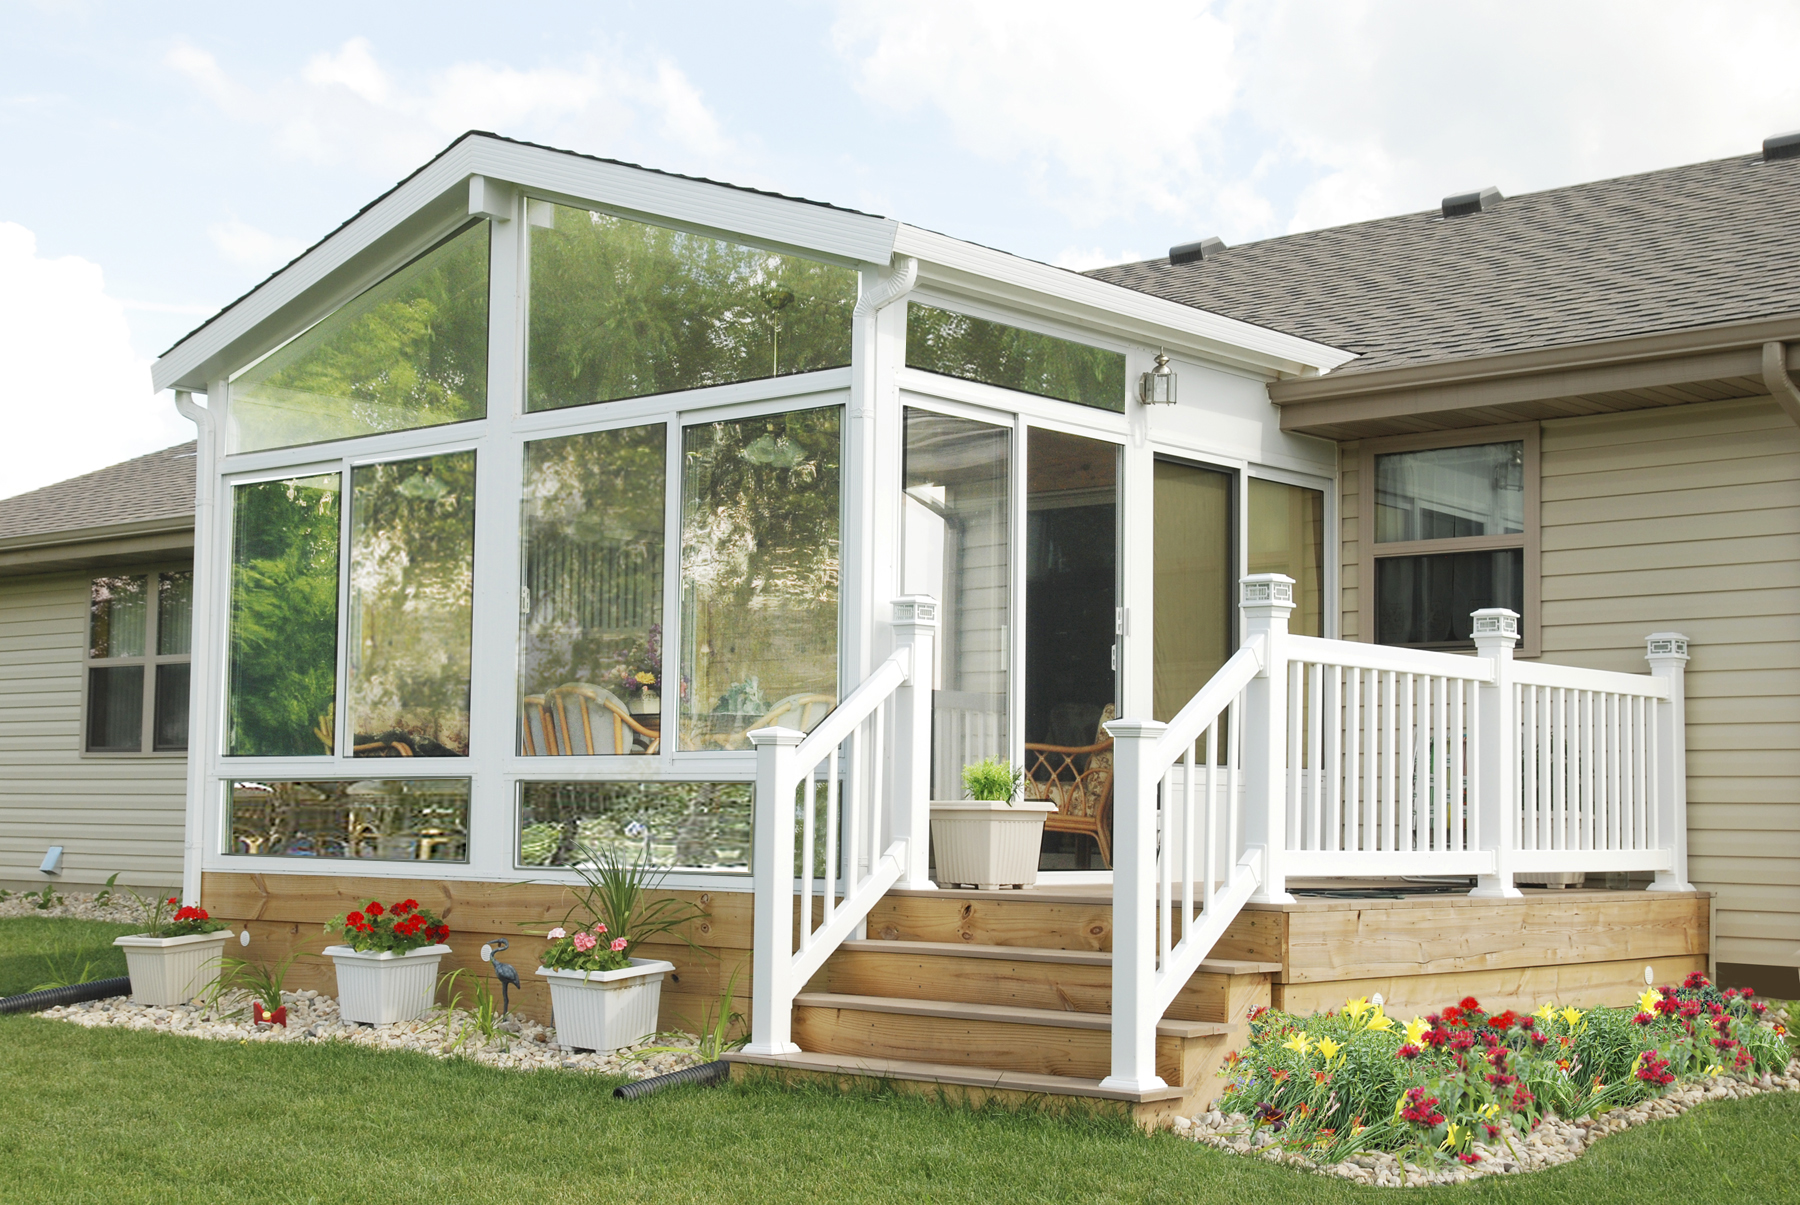 gable style sunroom by betterliving patio sunrooms of pittsburgh - Better Living Patio Rooms